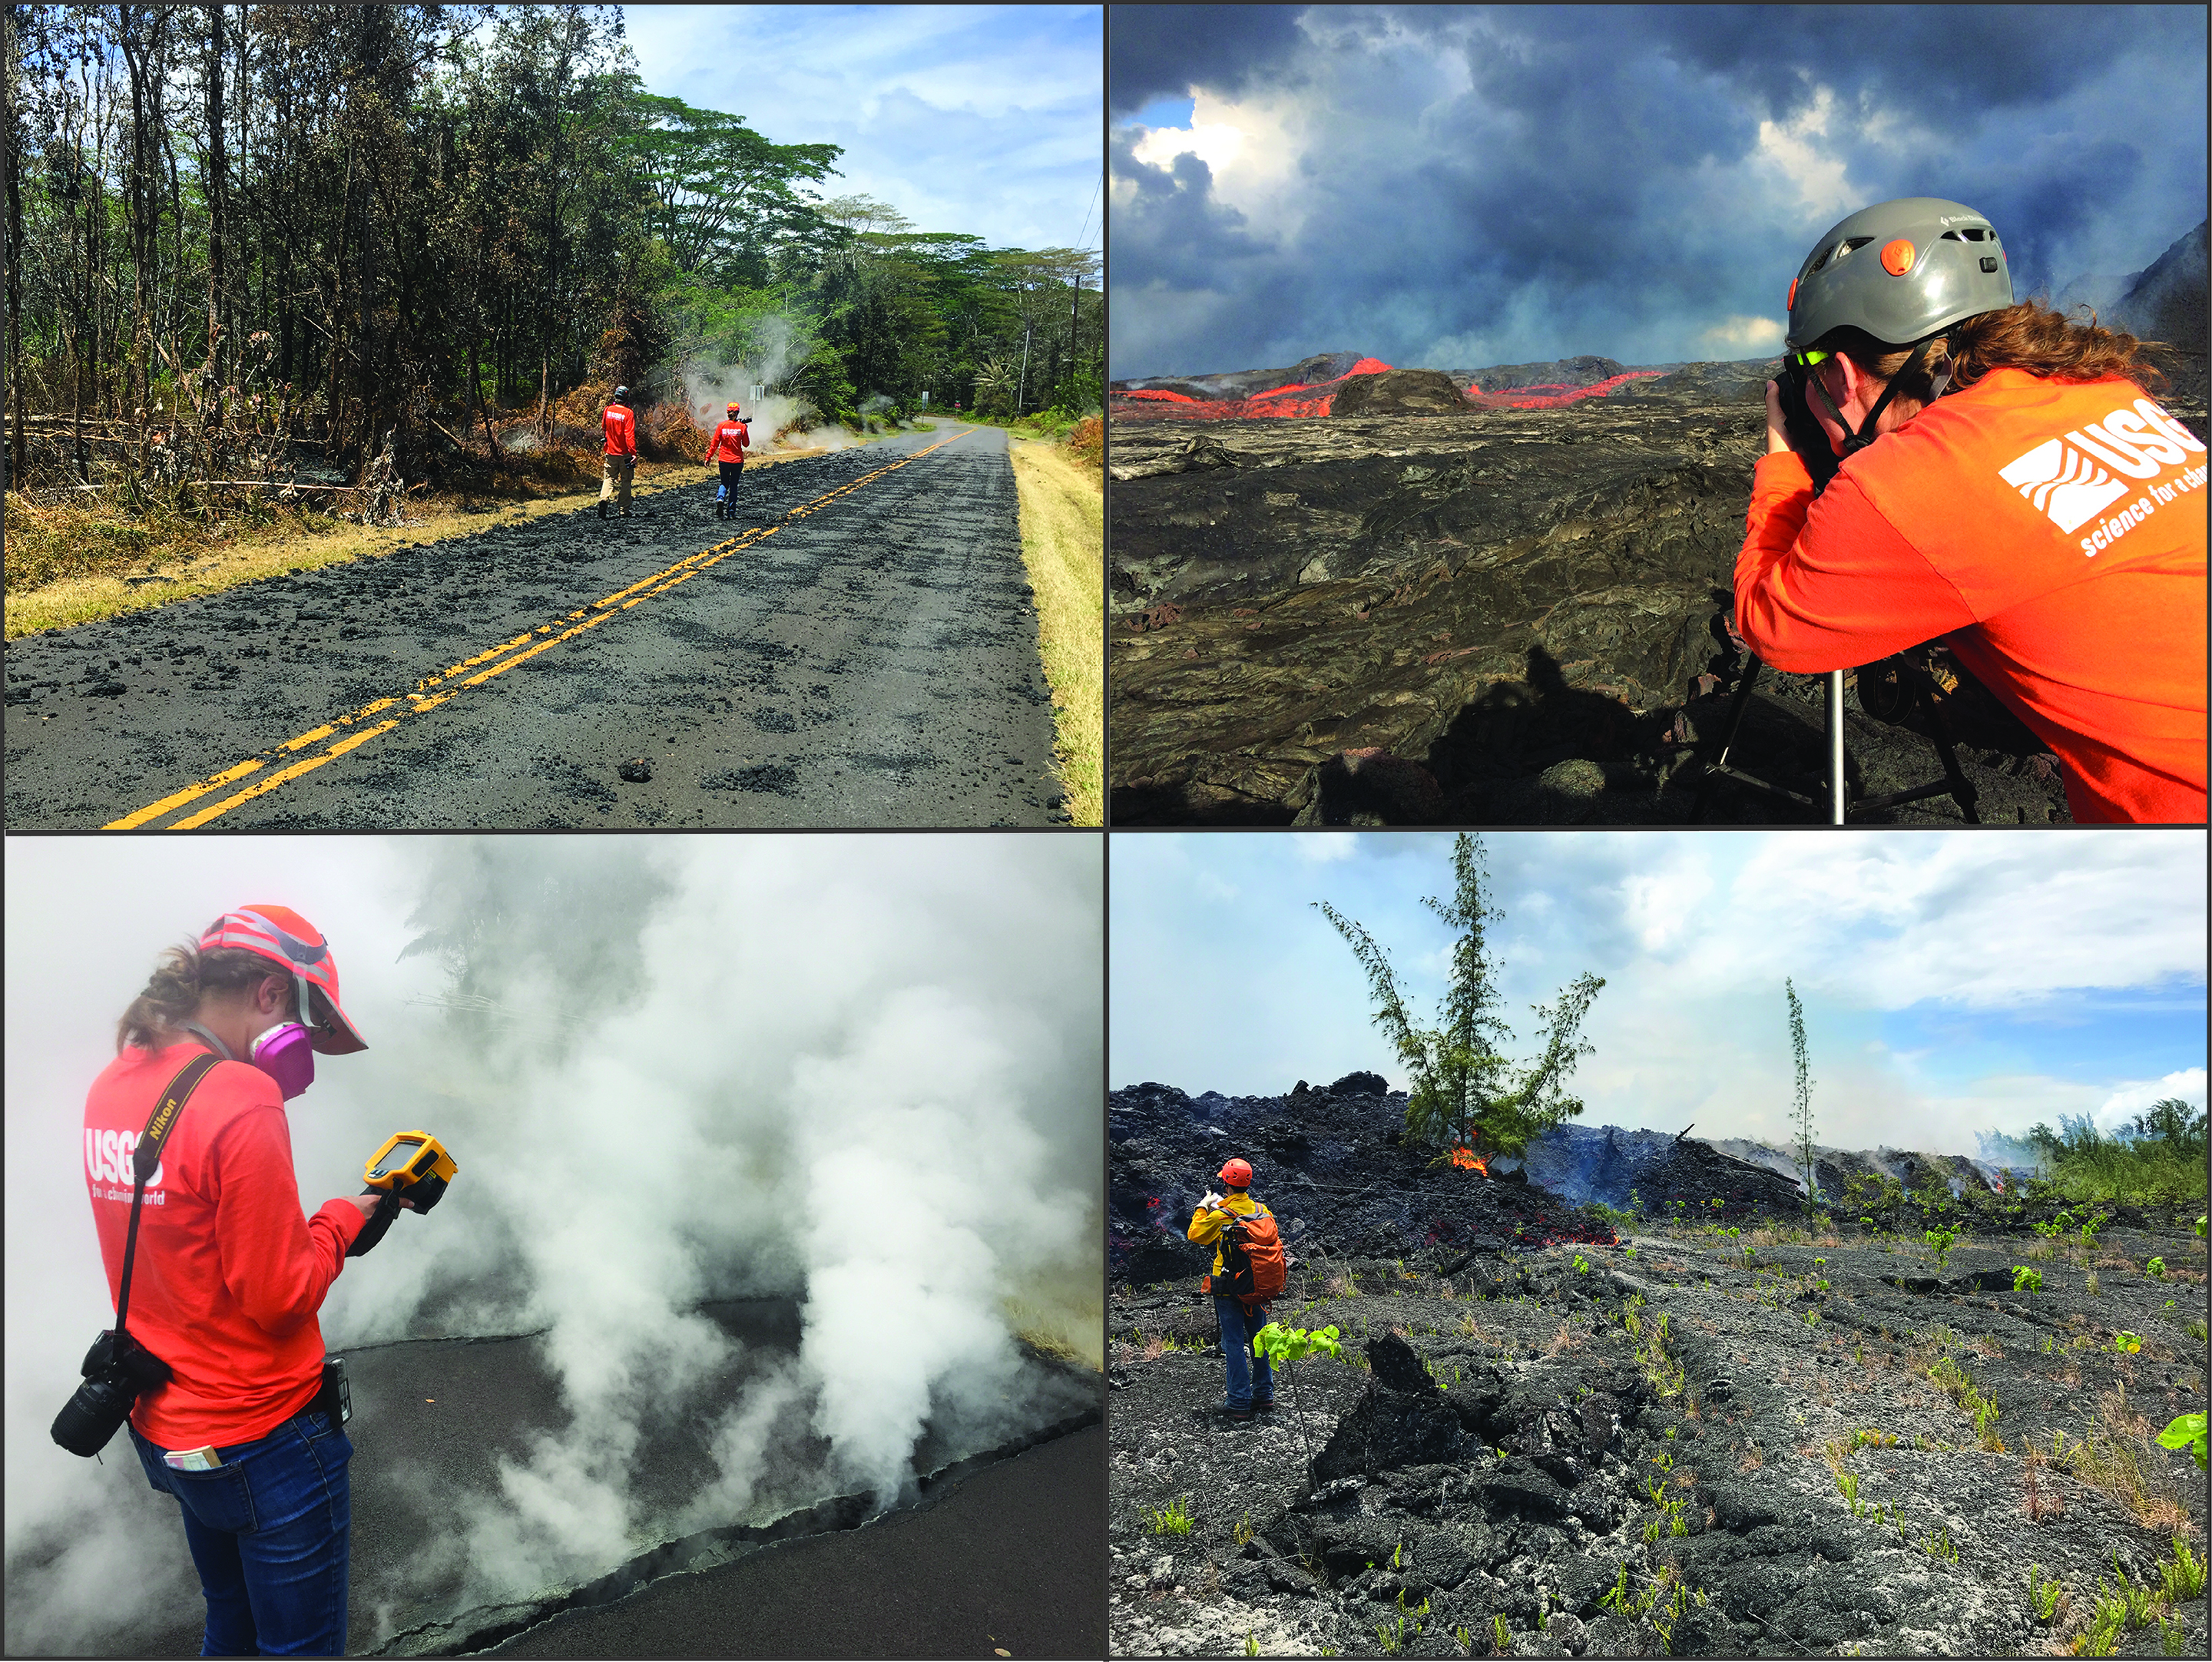 May 3rd Marks 1 Year Anniversary of 2018 Eruption